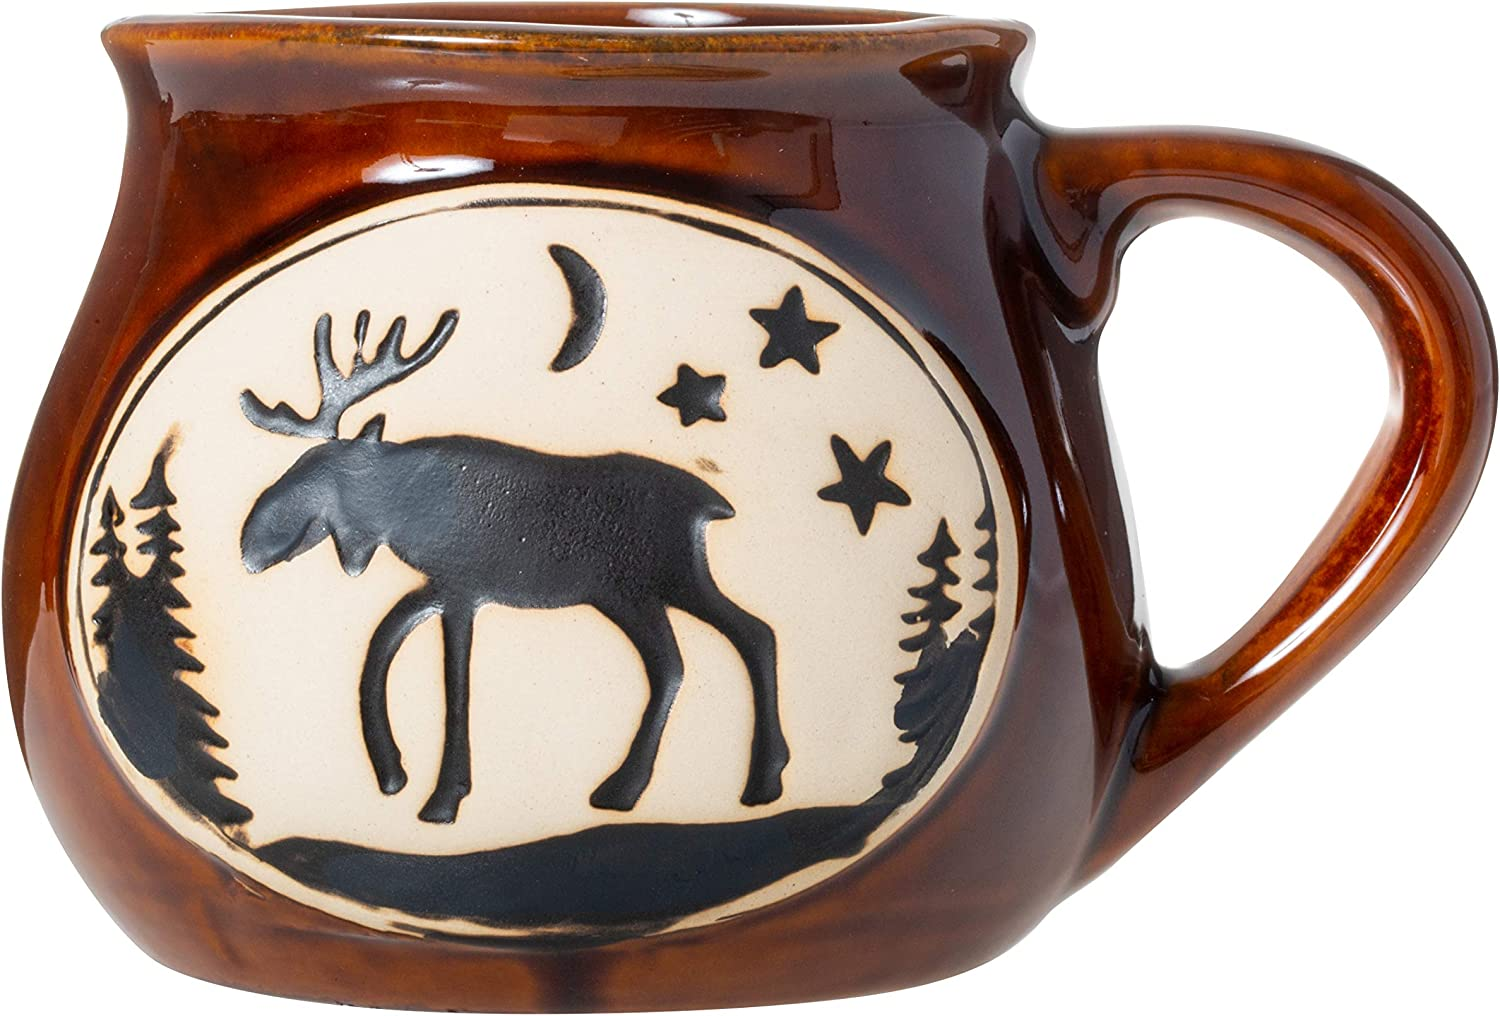 Cape Shore Handcrafted Bean Pot Stoneware 16oz Mug, Multiple Styles Available (Moose)